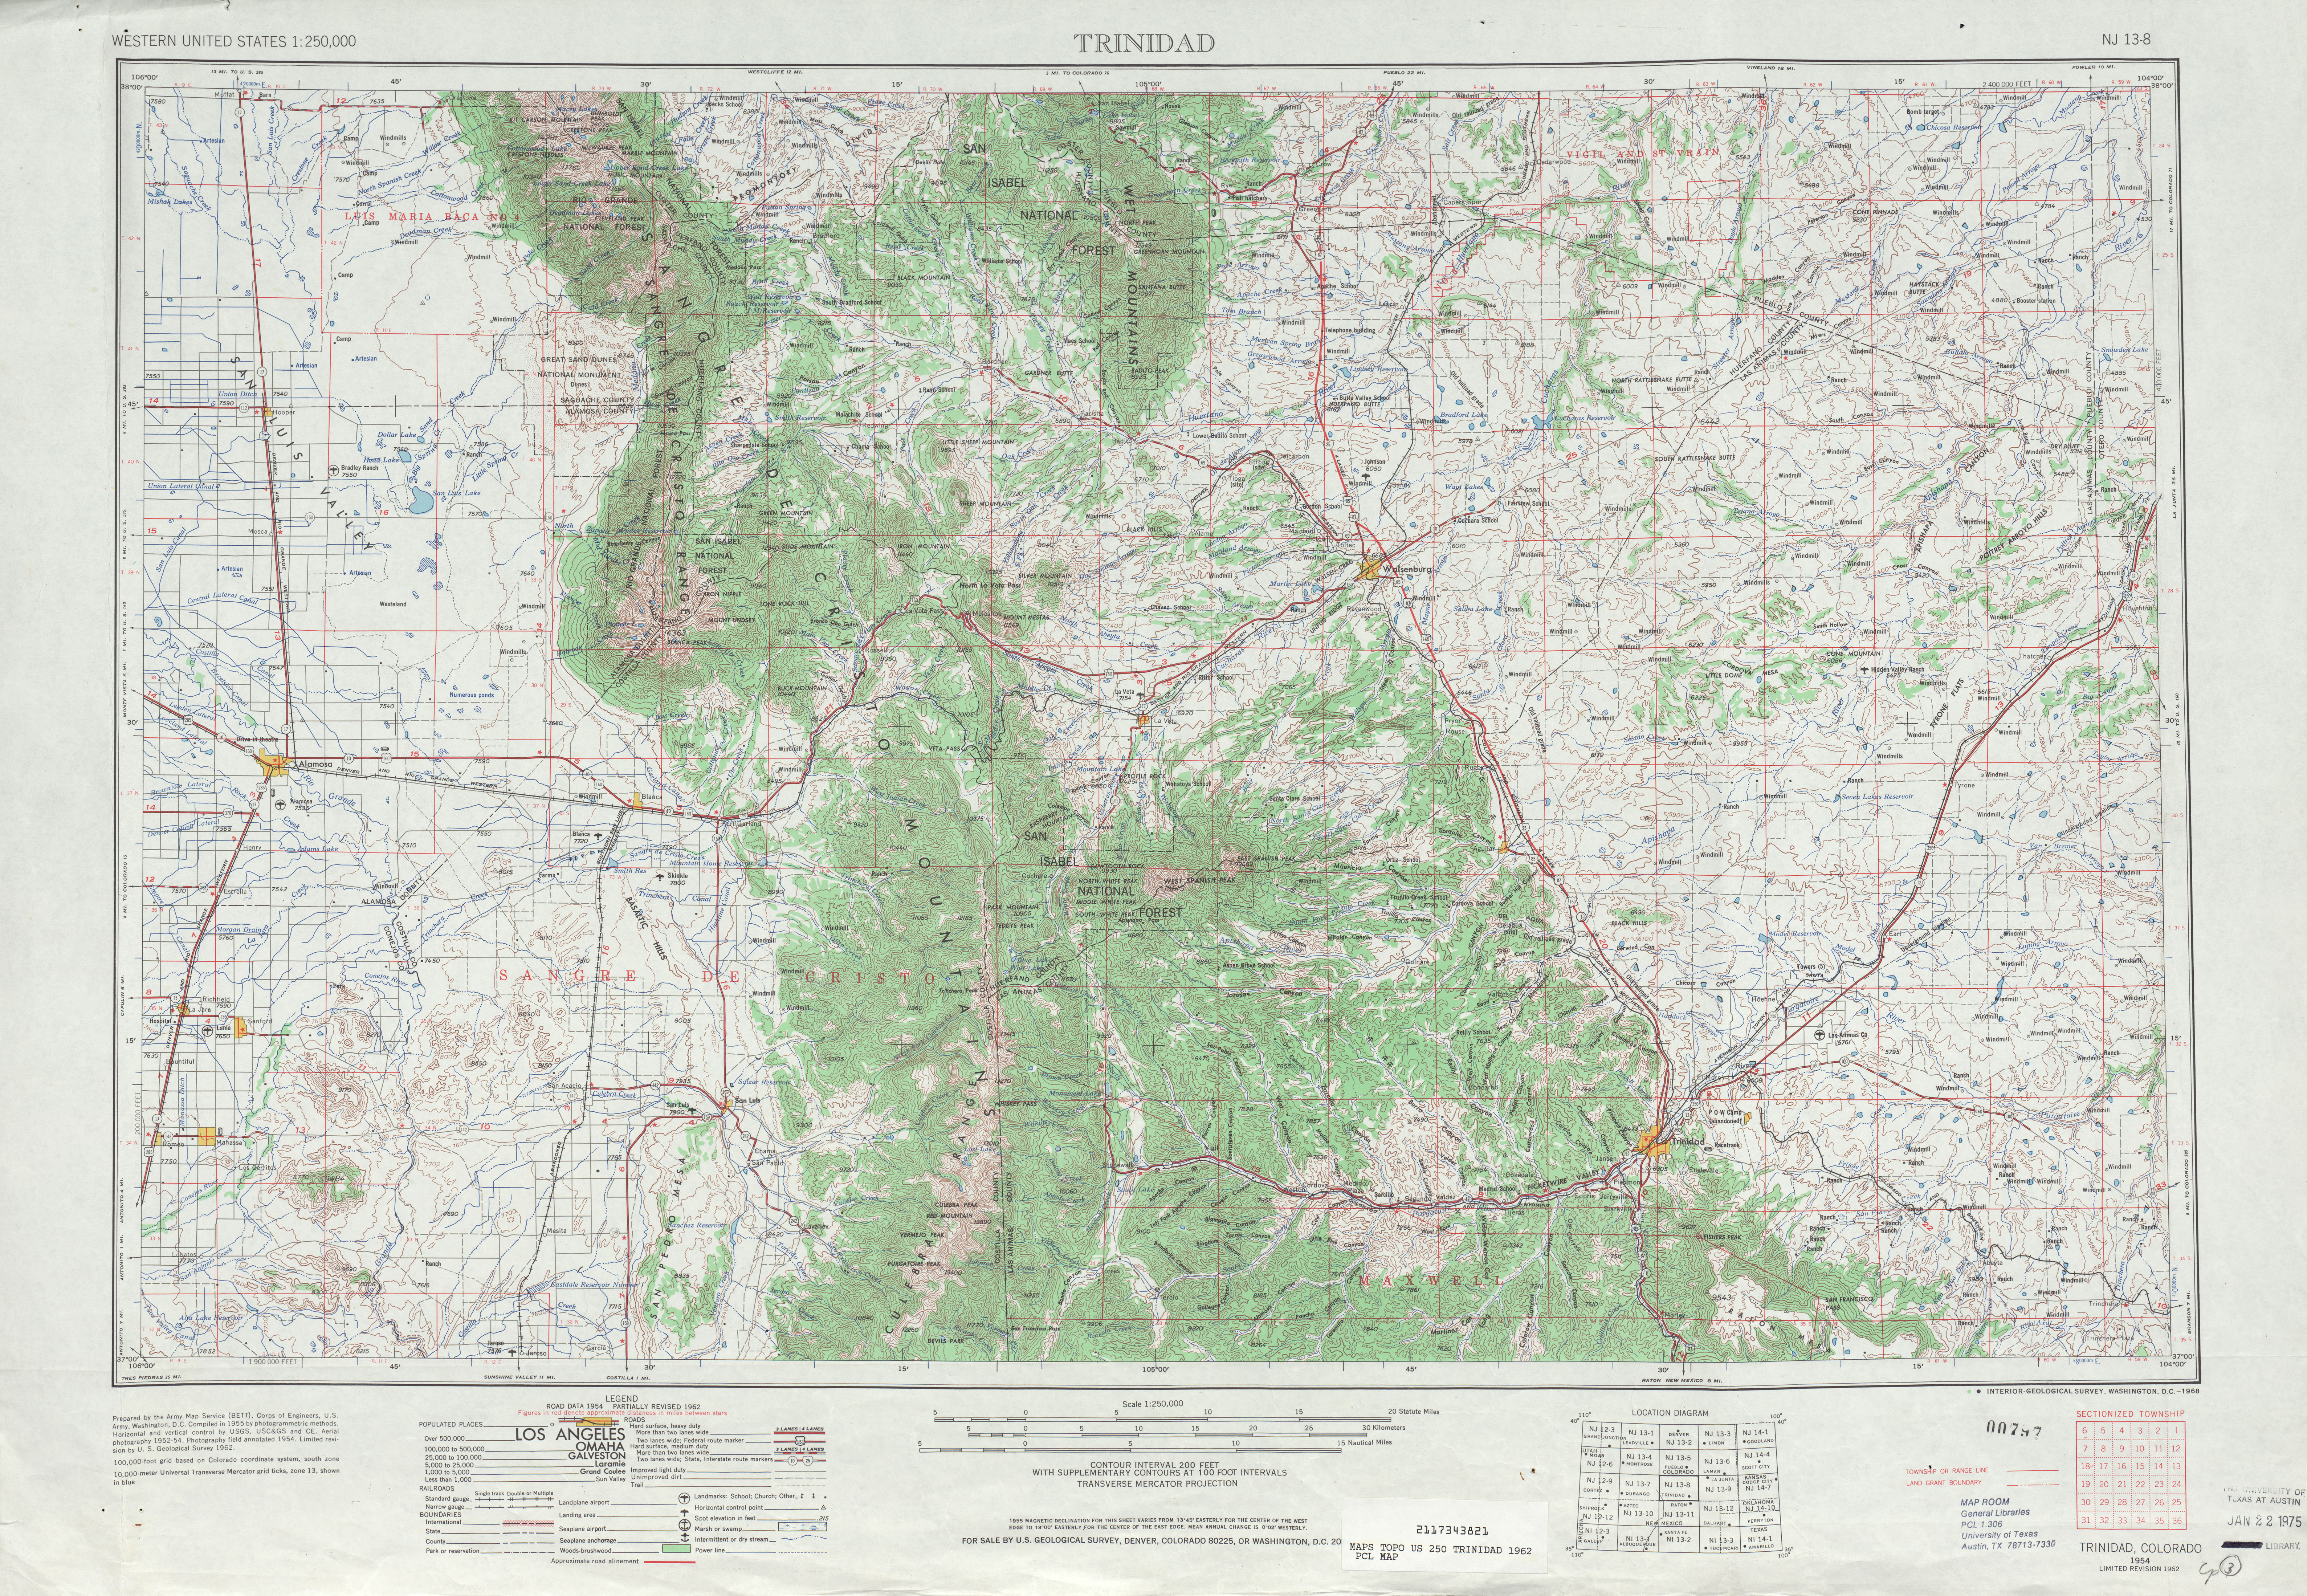 Trinidad Topographic Map Sheet, United States 1962